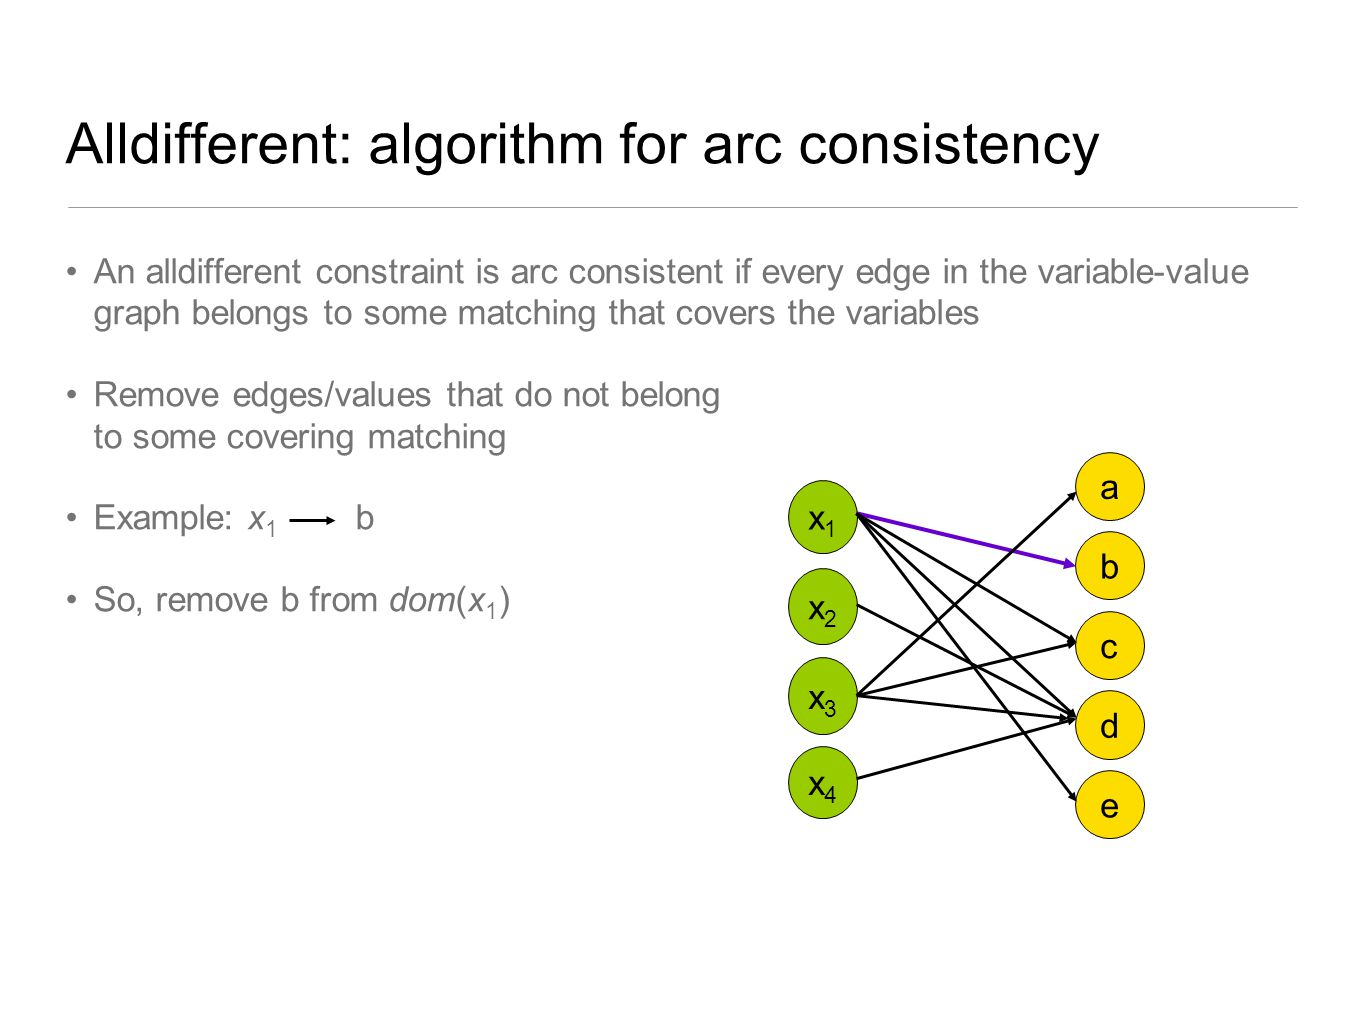 Alldifferent: algorithm for arc consistency